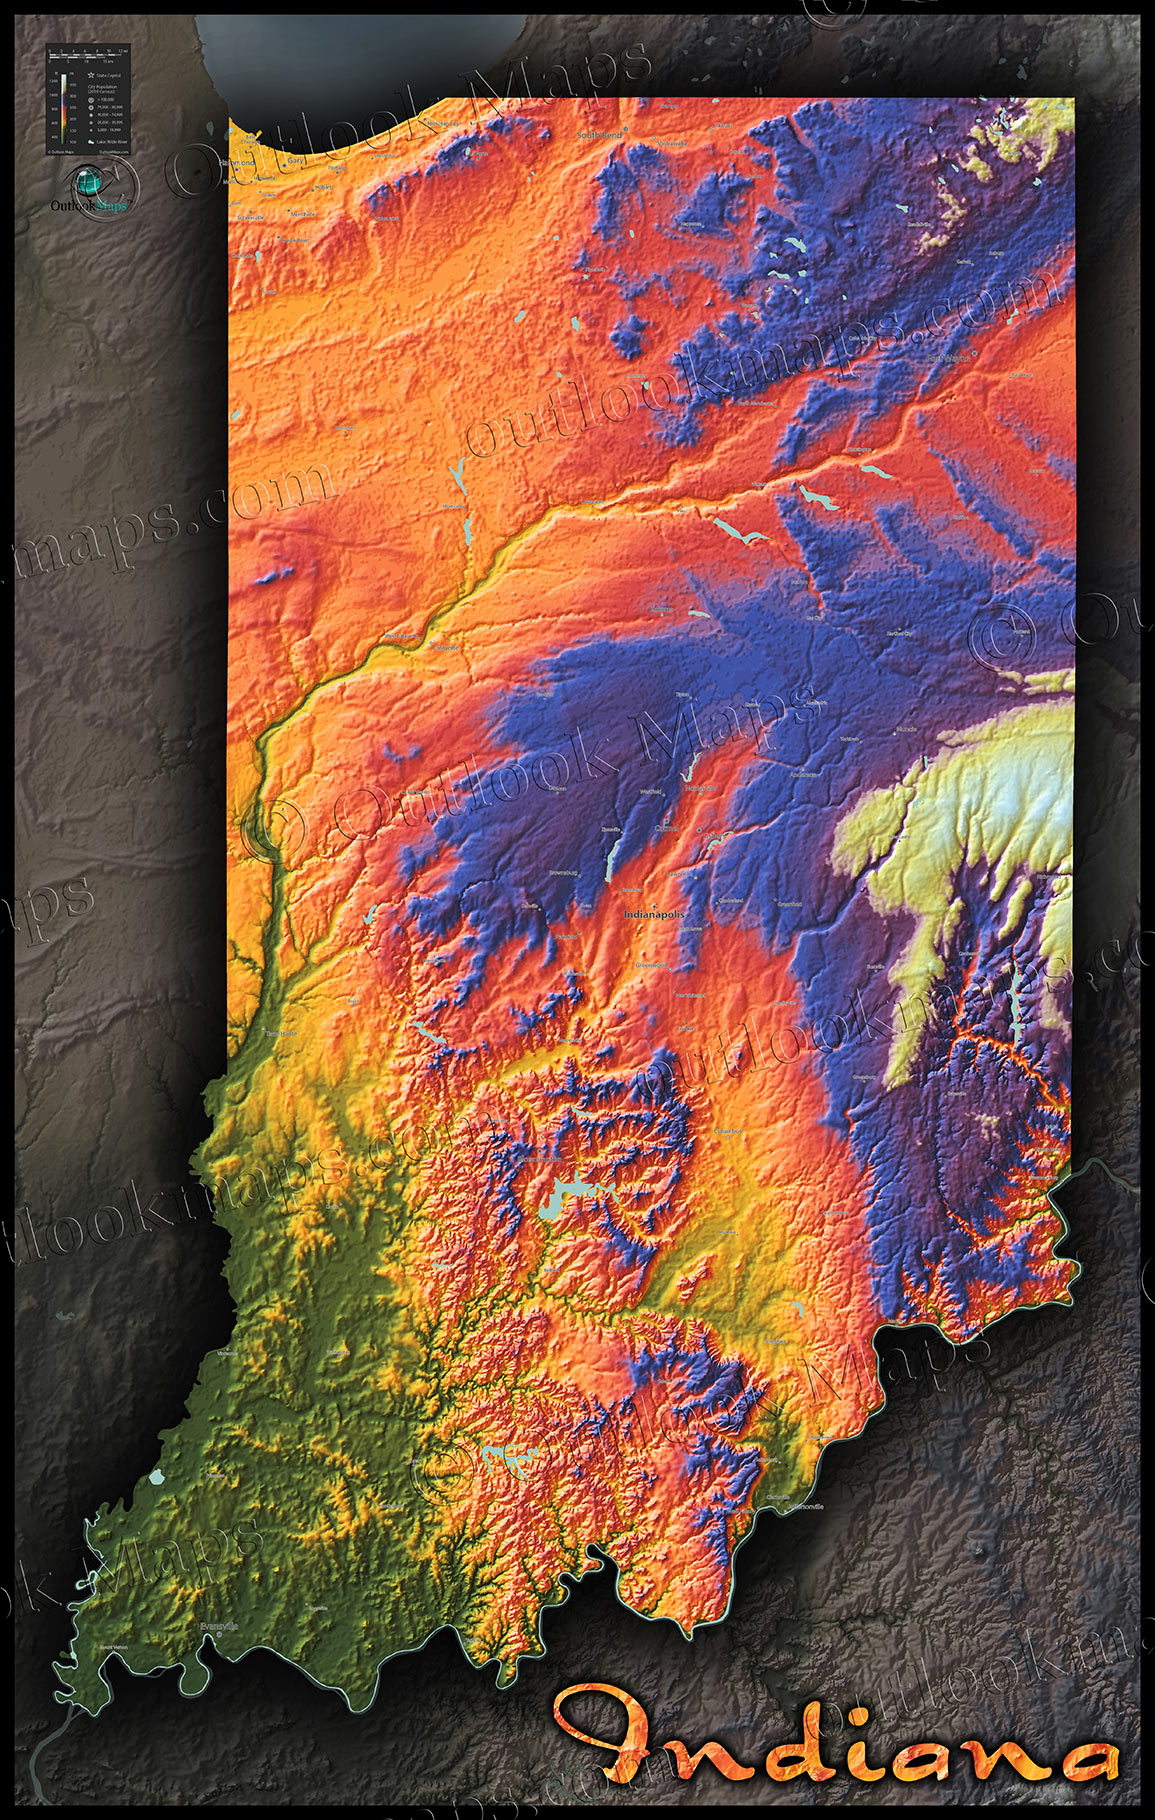 Indiana Topographic Wall Map Colorful Style Of Physical Terrain - Indiana physical map